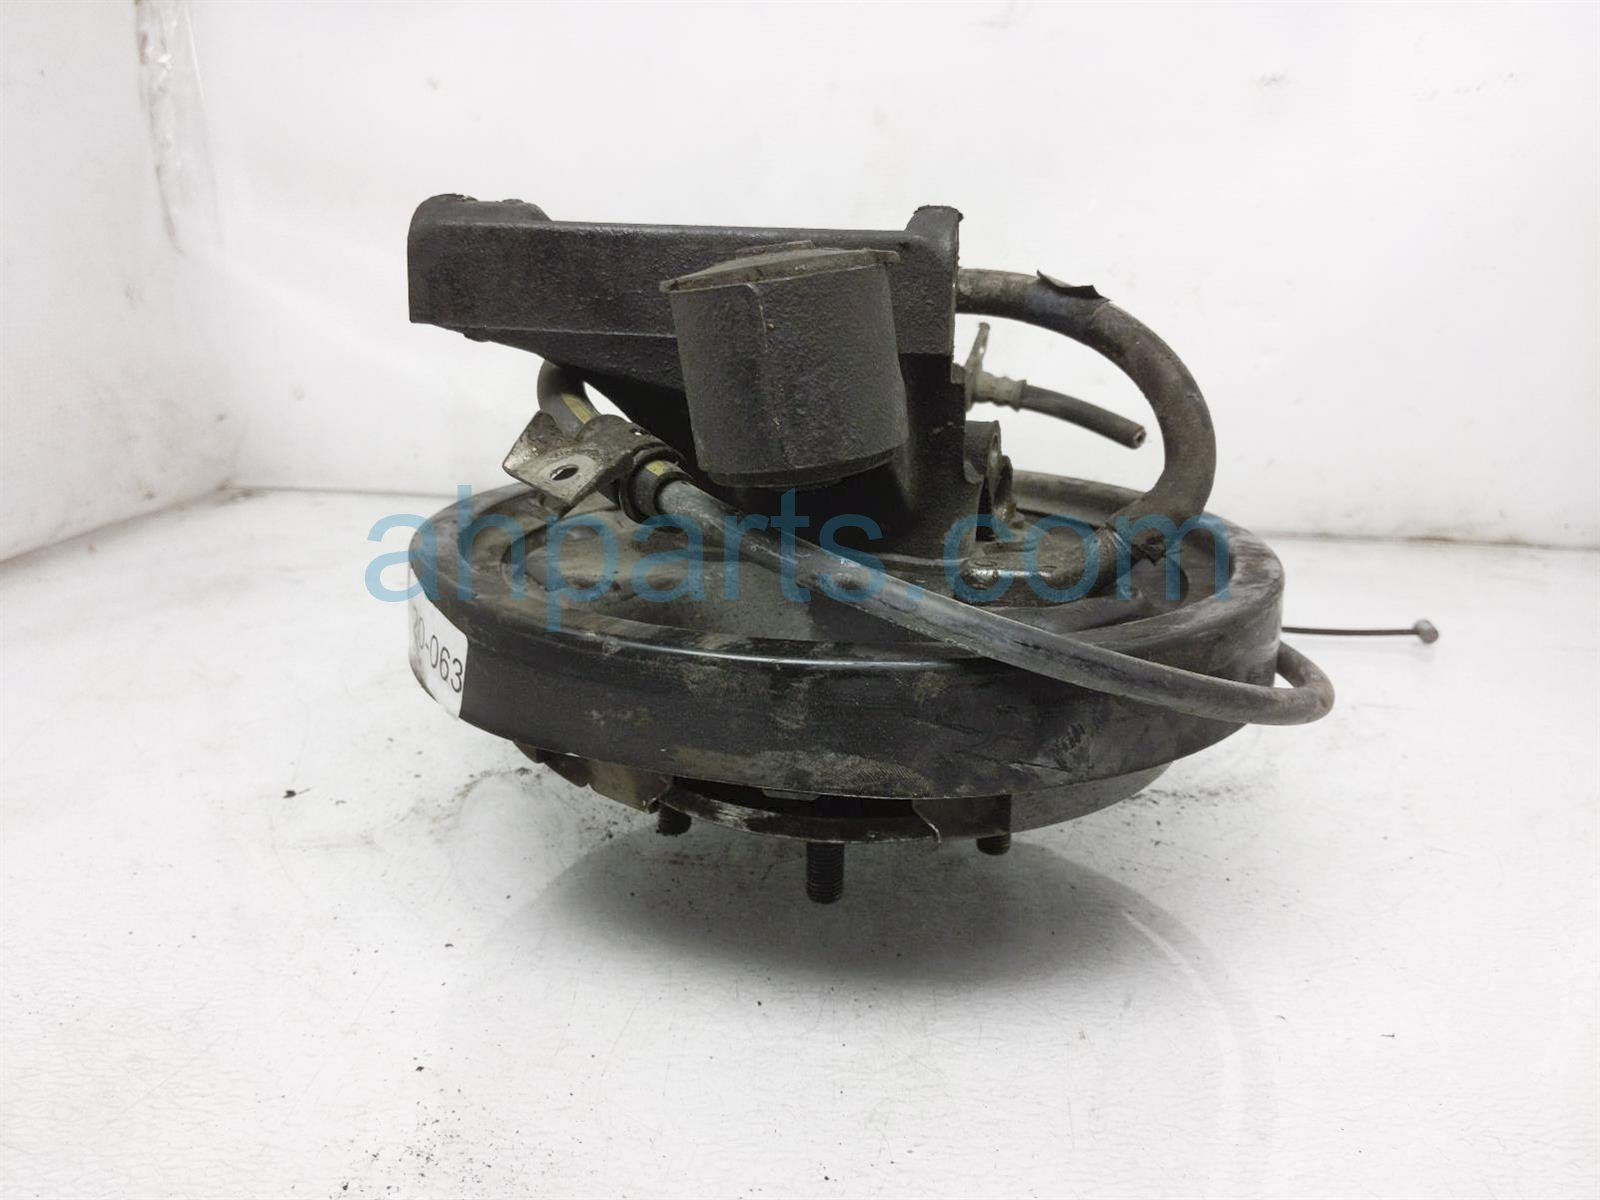 2001 Toyota Camry Axle Stub Rear Driver Spindle Knuckle Hub 42305 20090 Replacement